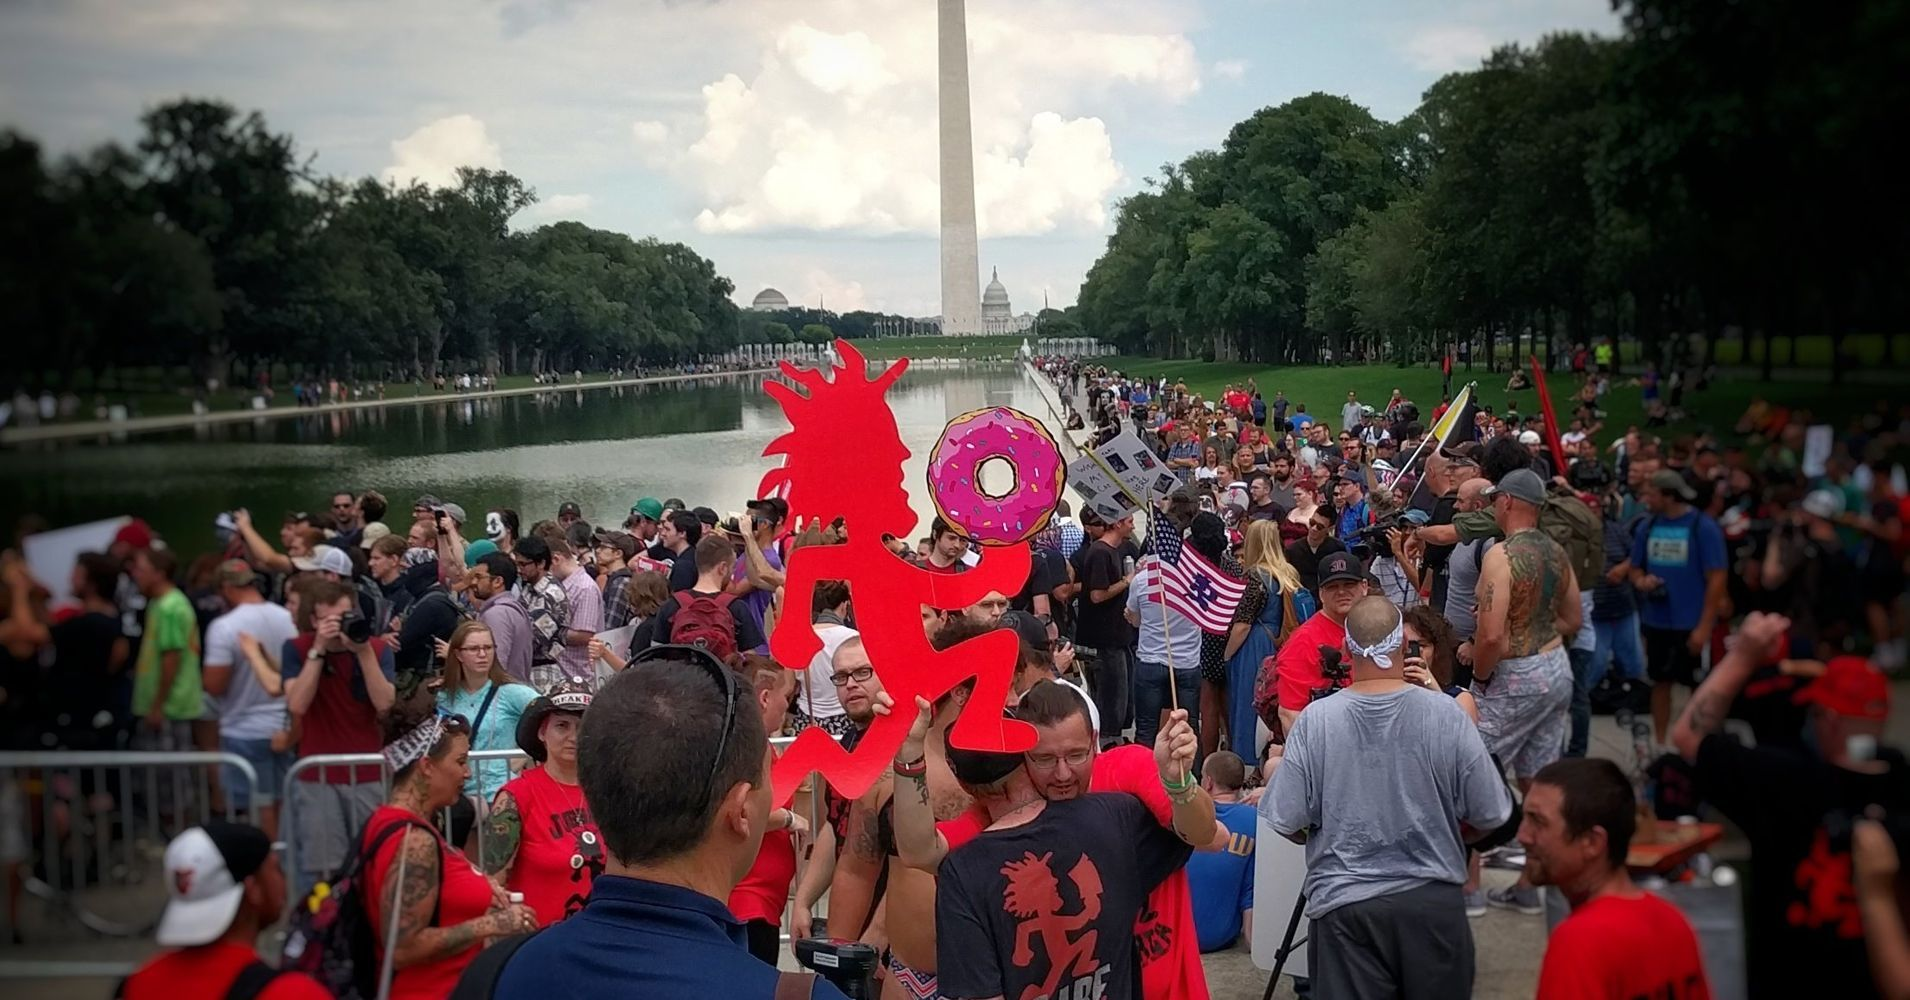 Juggalos Draw Bigger Crowd On The National Mall Than Pro-Trump Rally - HuffPost